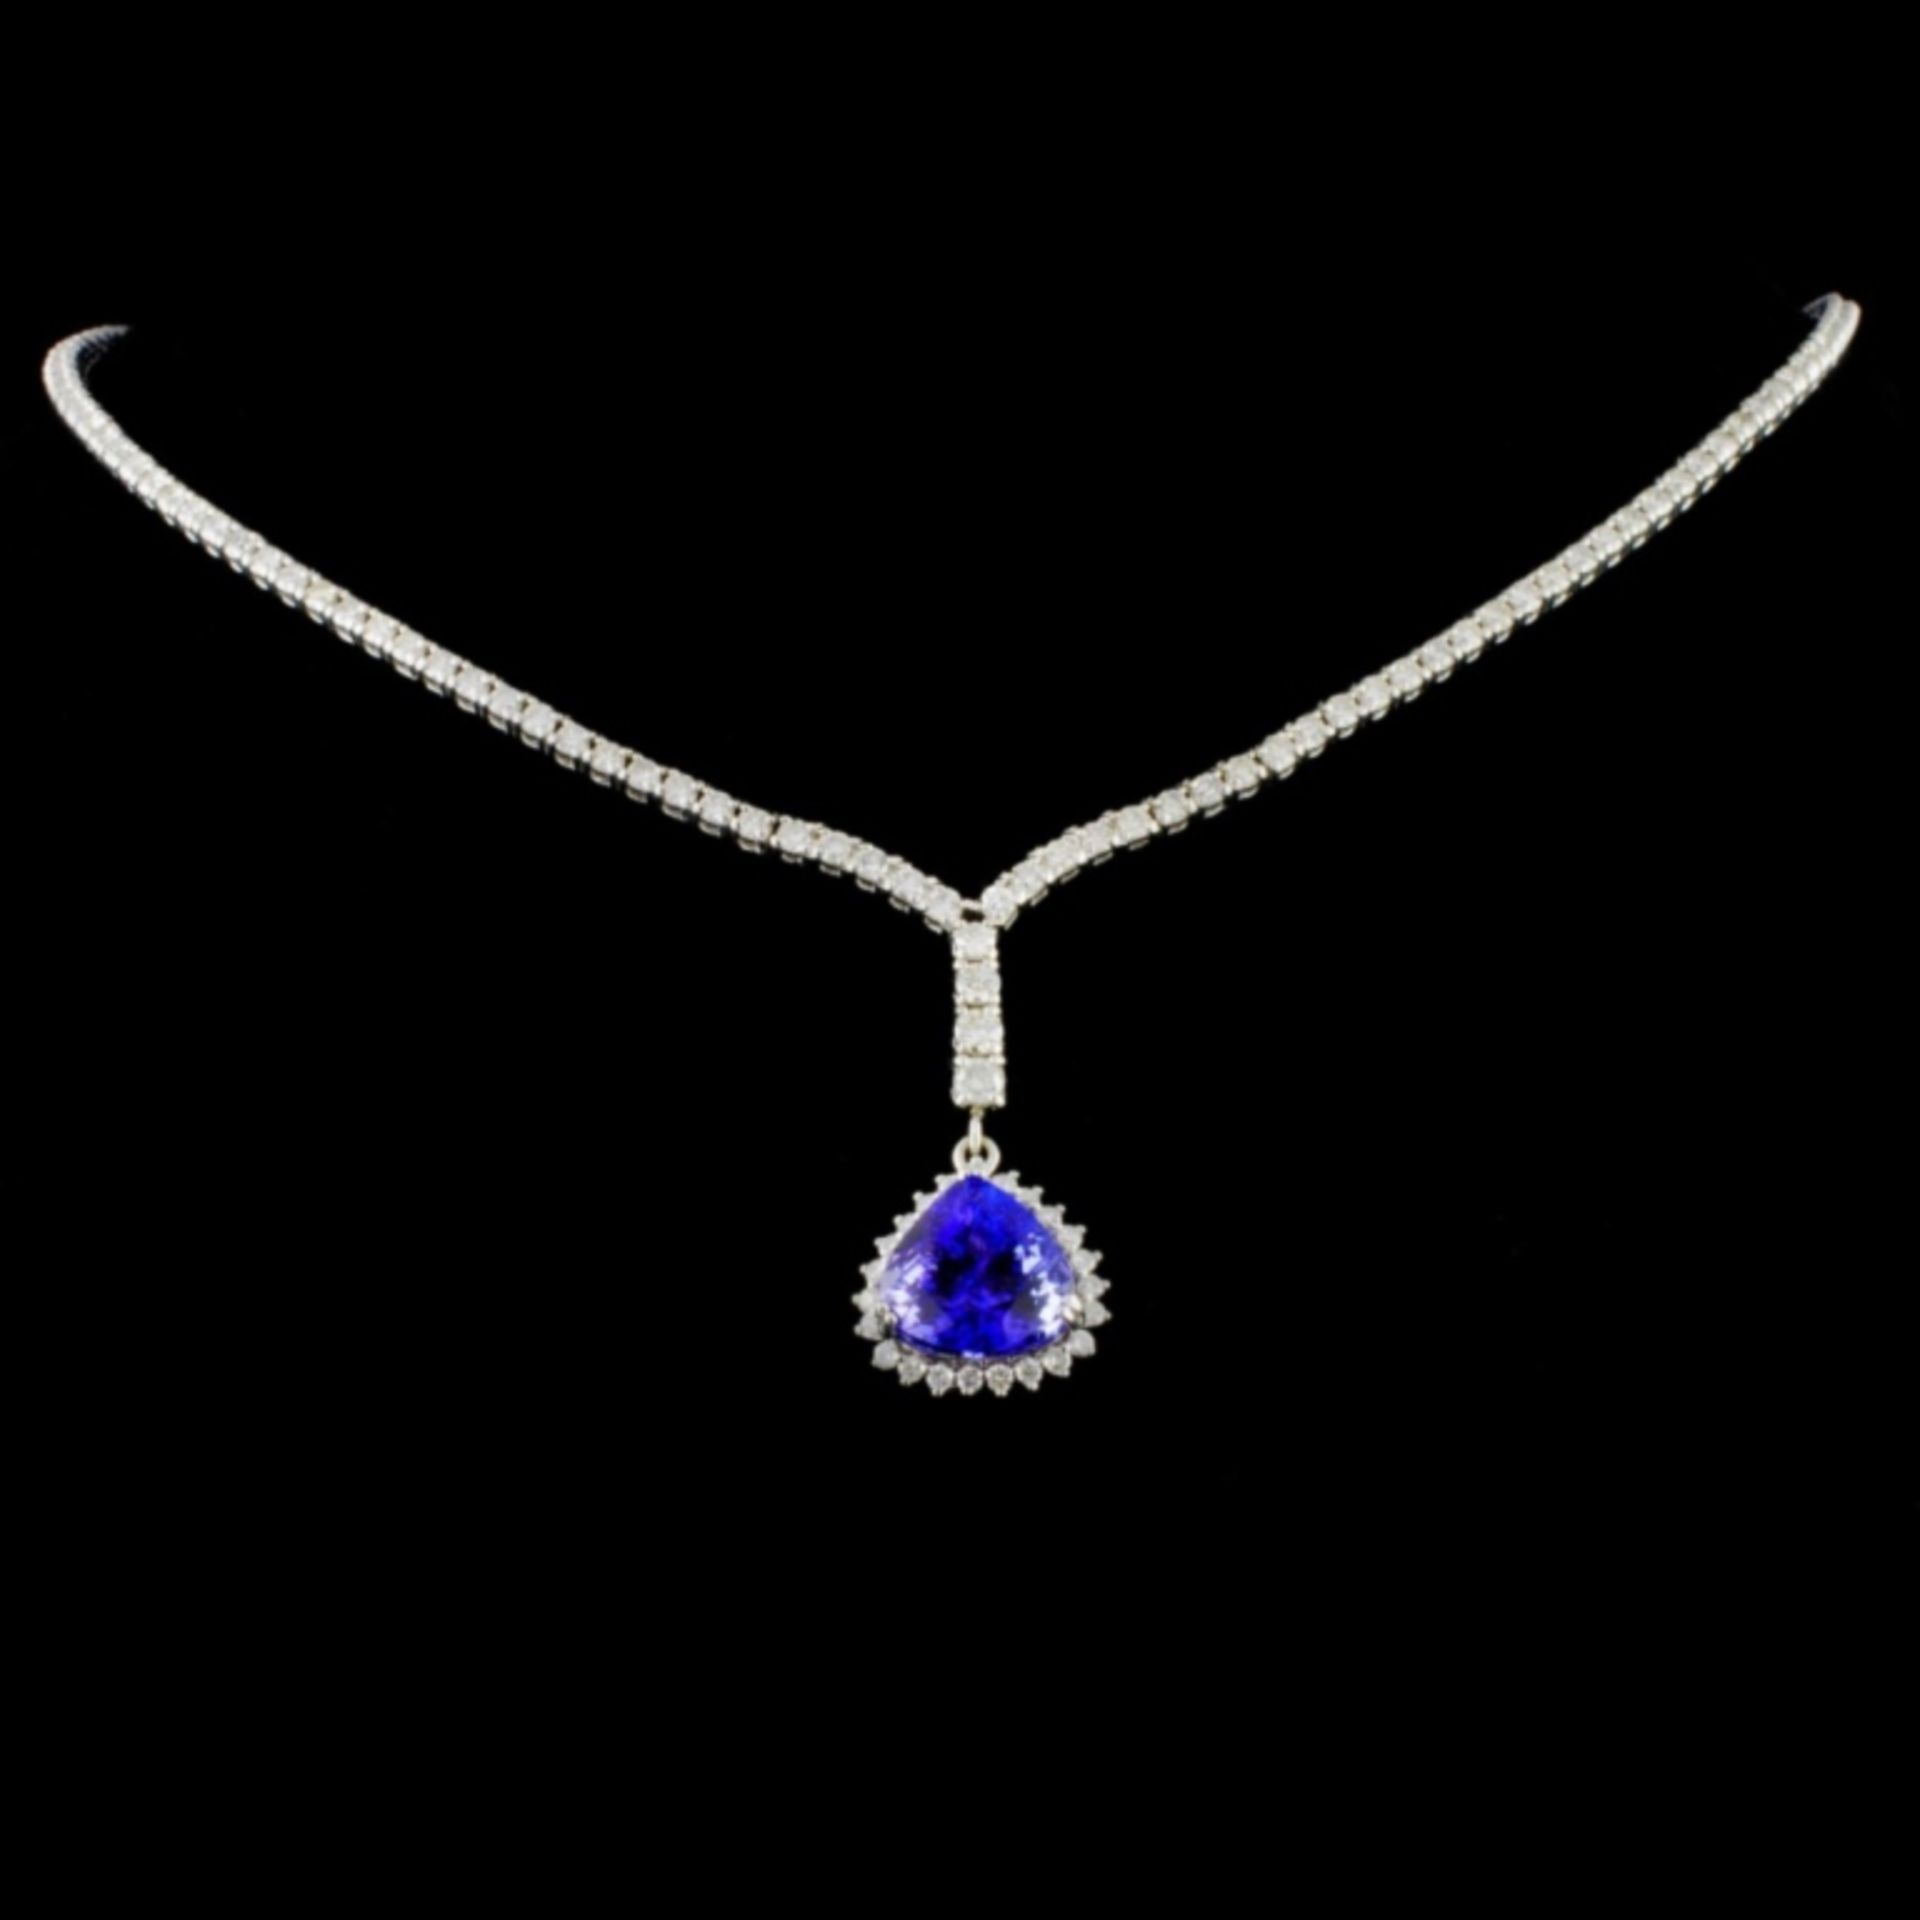 18K White Gold 5.96ct Tanzanite & 3.47ct Diamond N - Image 2 of 3